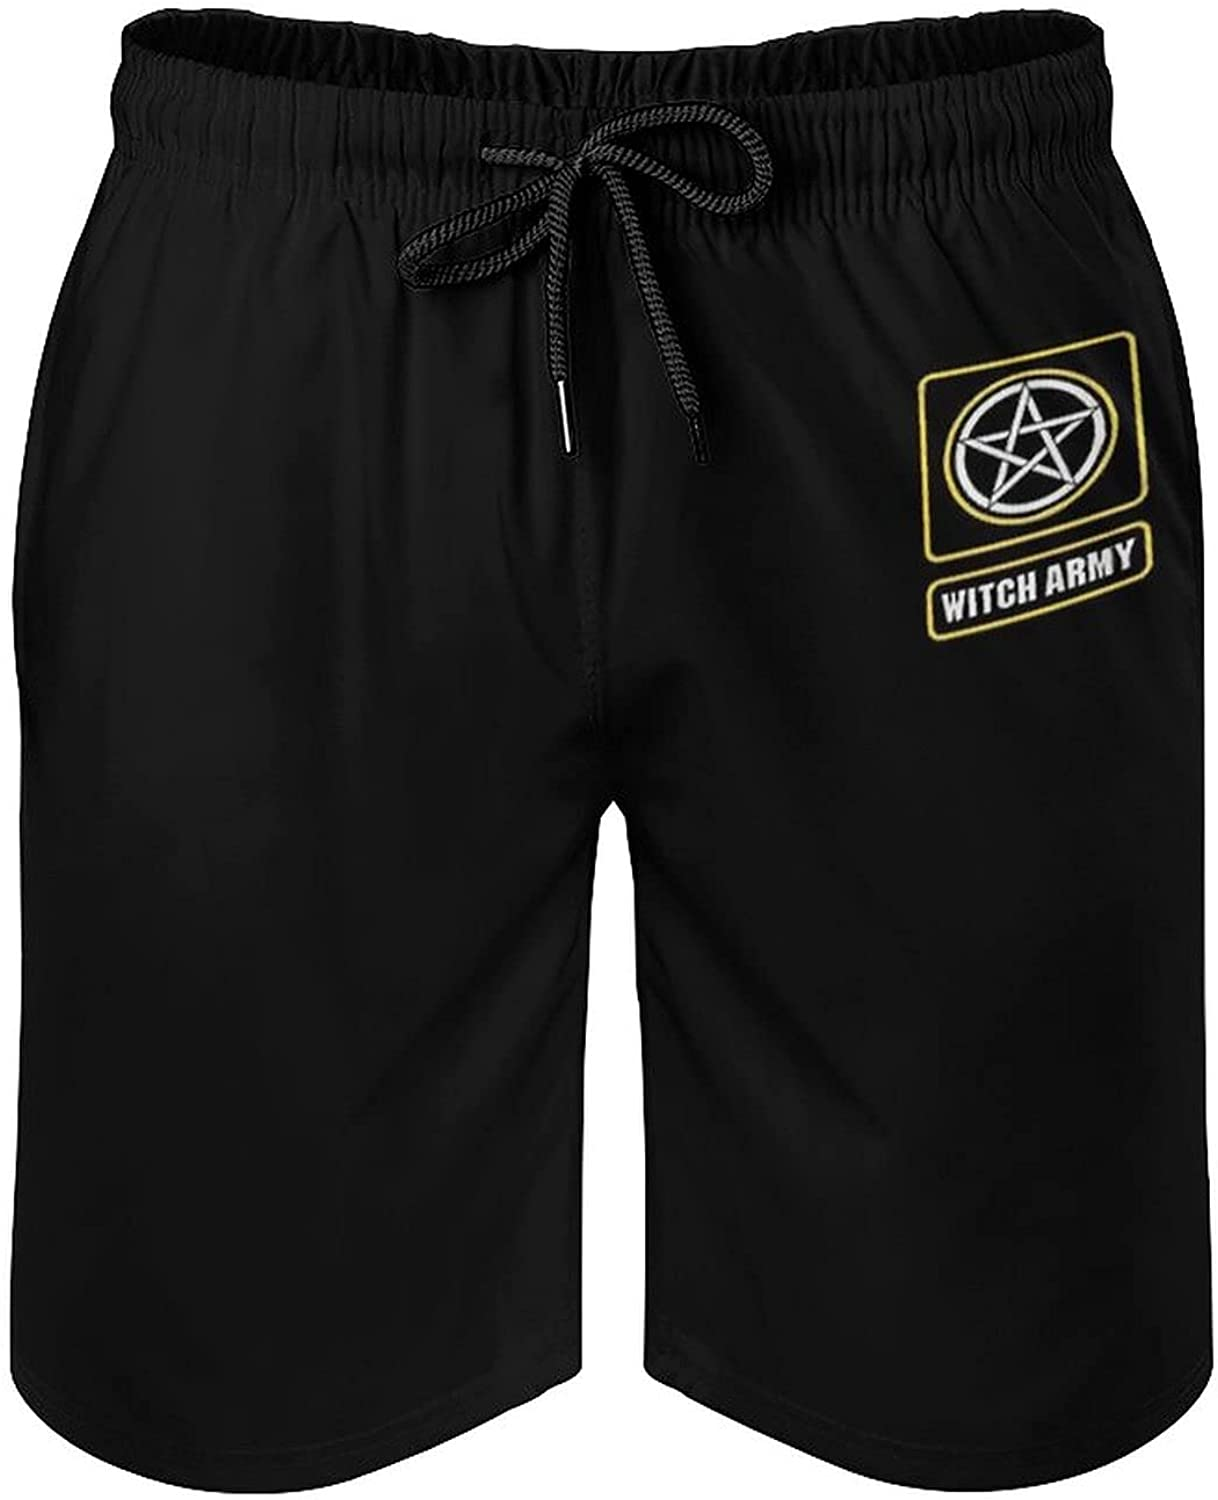 Board Shorts-Witch Army - Motherland Fort Salem Mens Beach Shorts Swimwear with Pockets Adjustable Drawstring